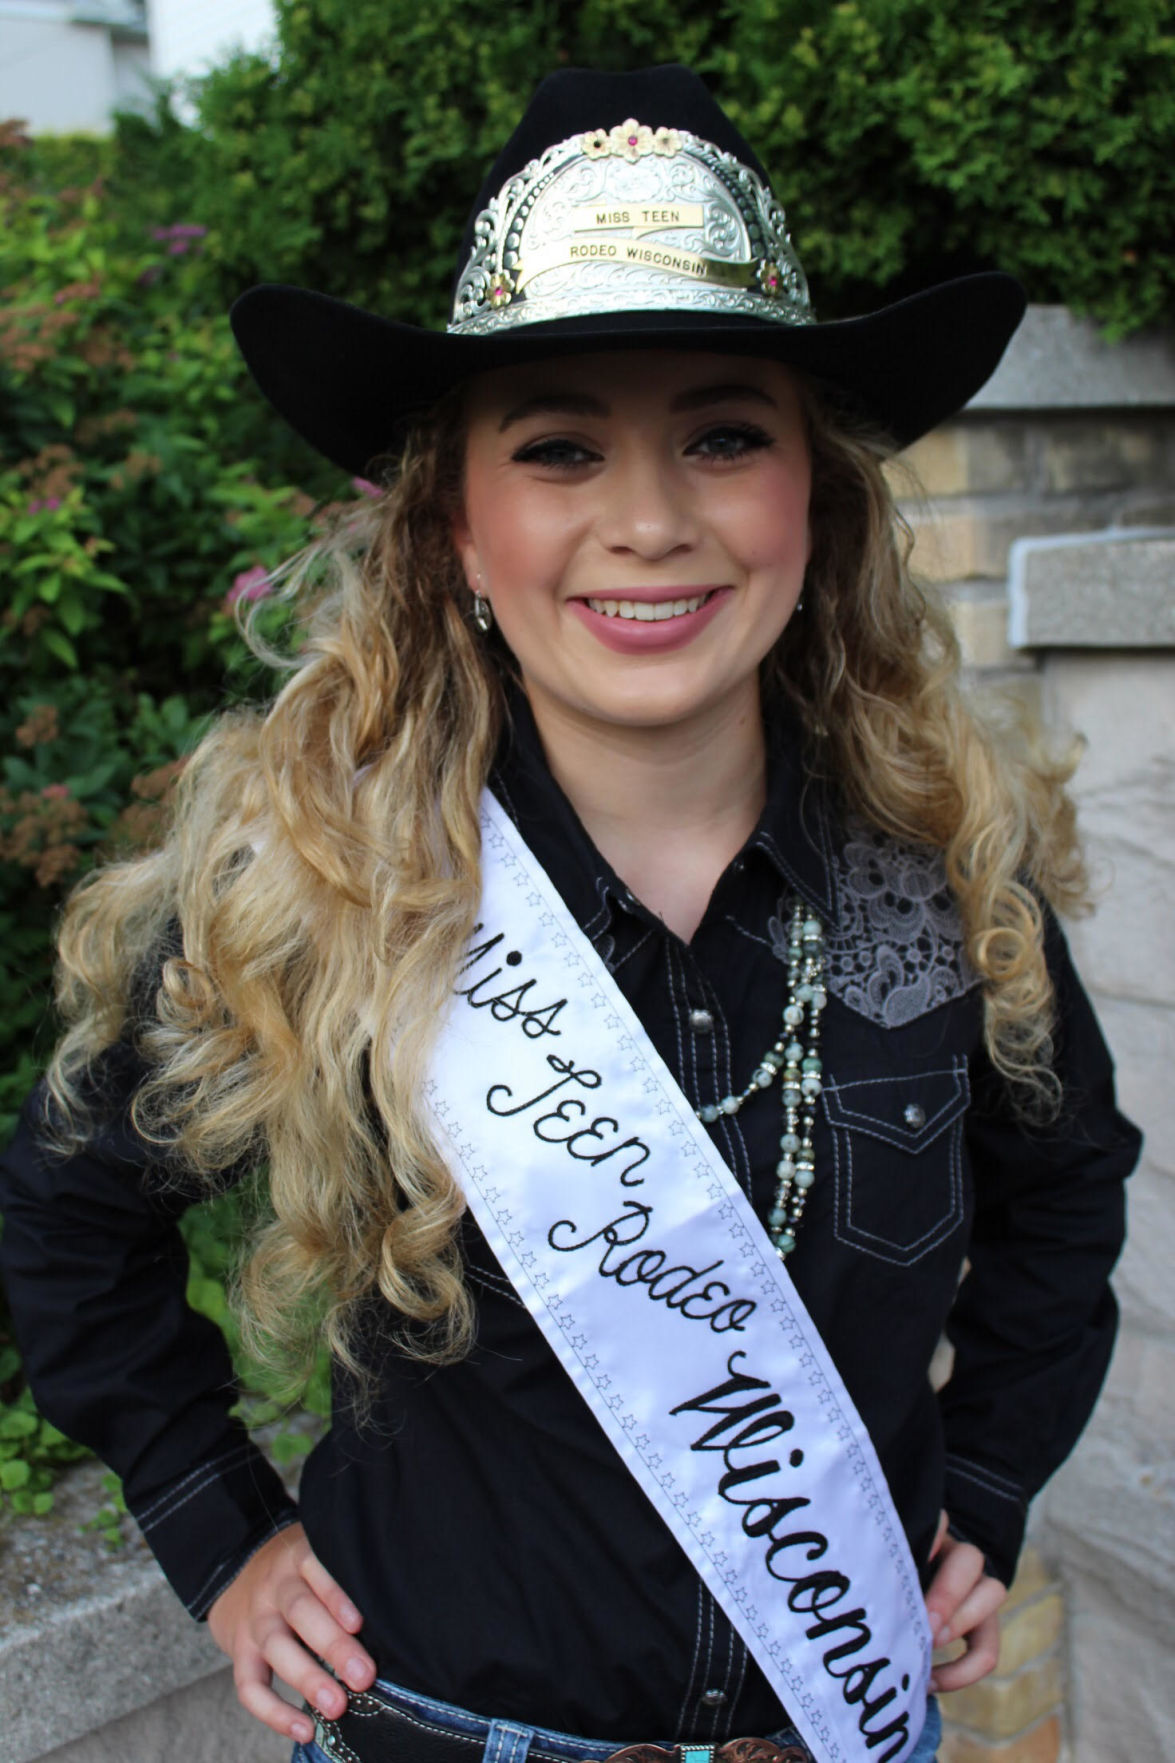 Miss Teen Rodeo 2